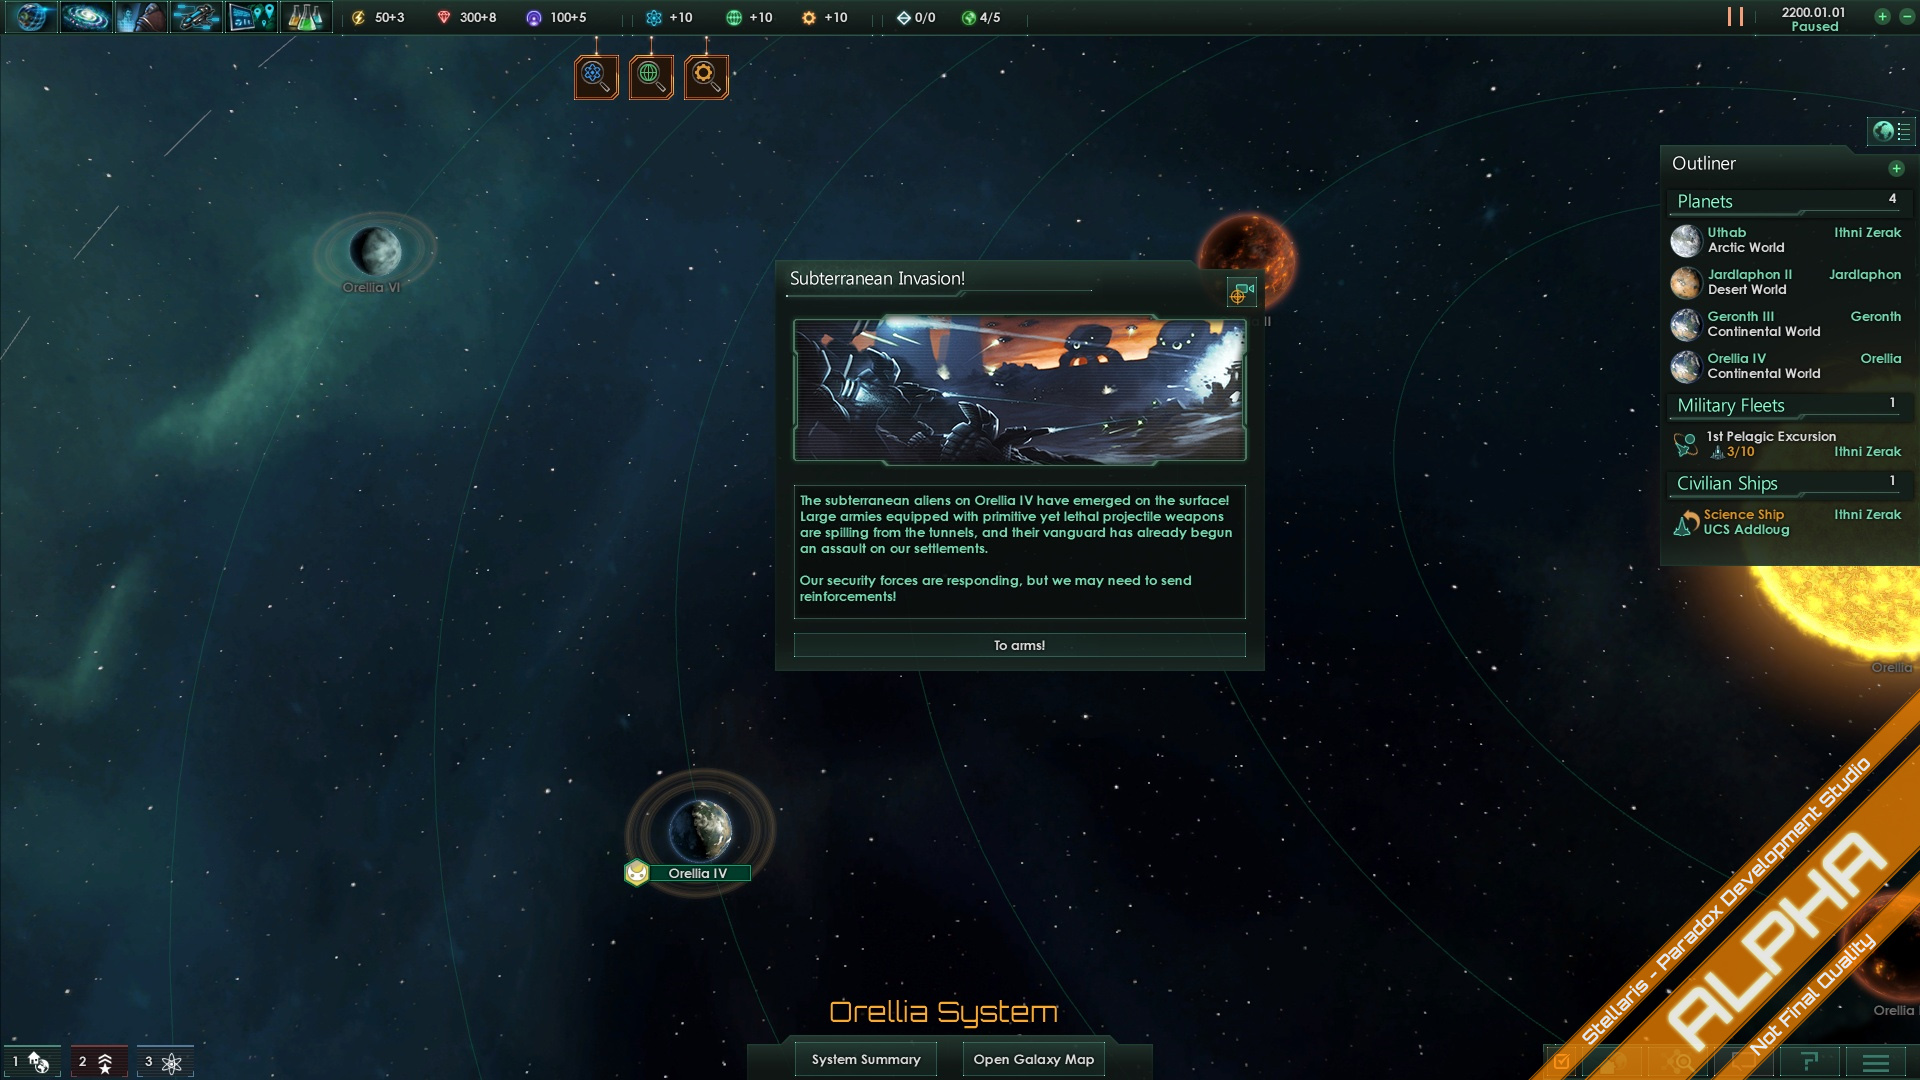 stellaris_dev_diary_15_02_20160111_event_2.jpg